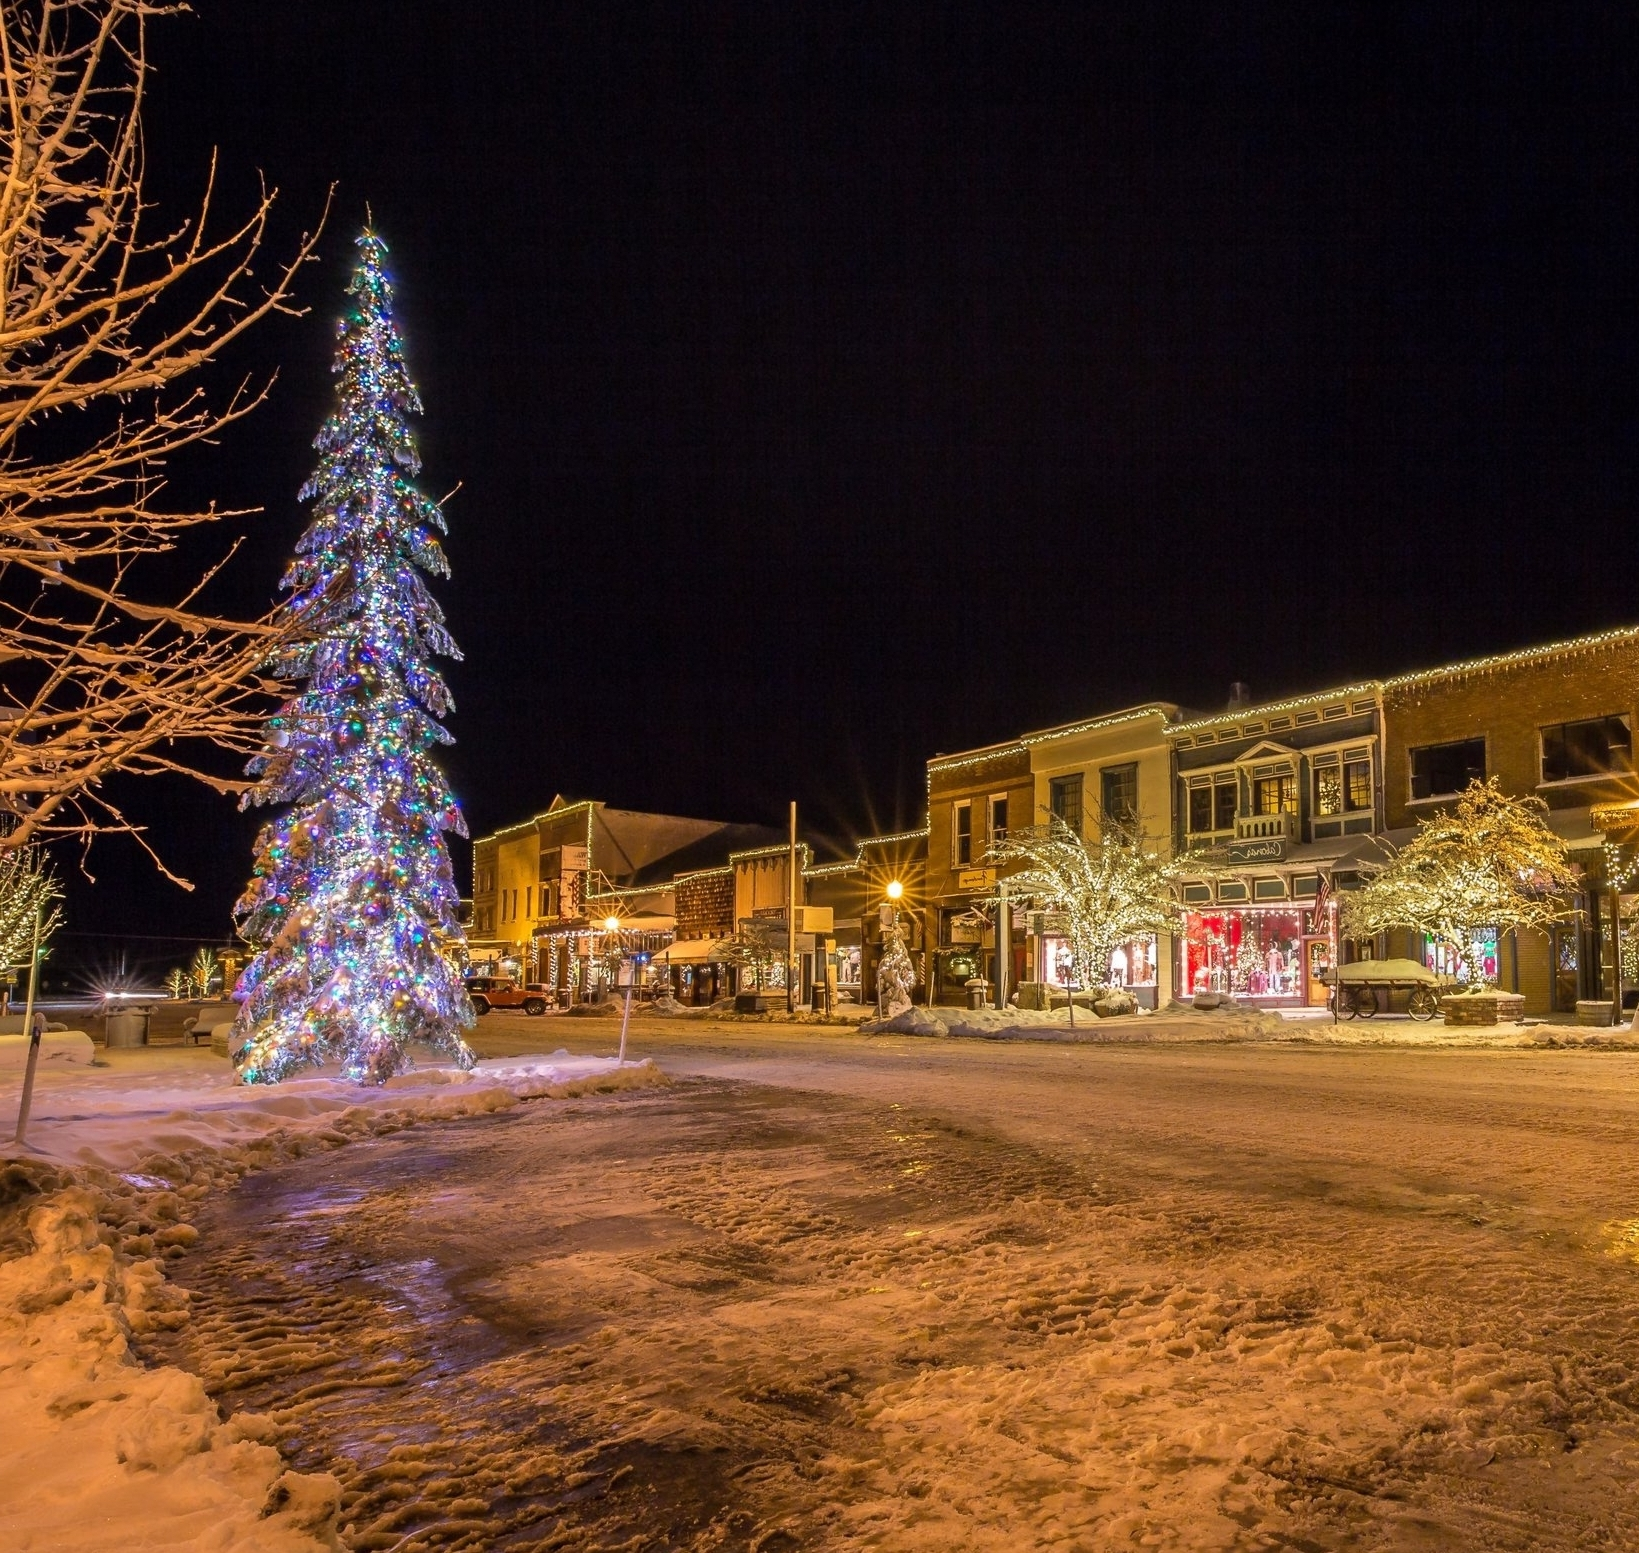 """Let's build our community. - We know that a successful downtown is a result of the relationships and partnerships between all individuals in the community. We look forward to your involvement as we continue to uphold Historic Downtown Truckee's reputation as the """"Heart and Soul"""" of Truckee."""